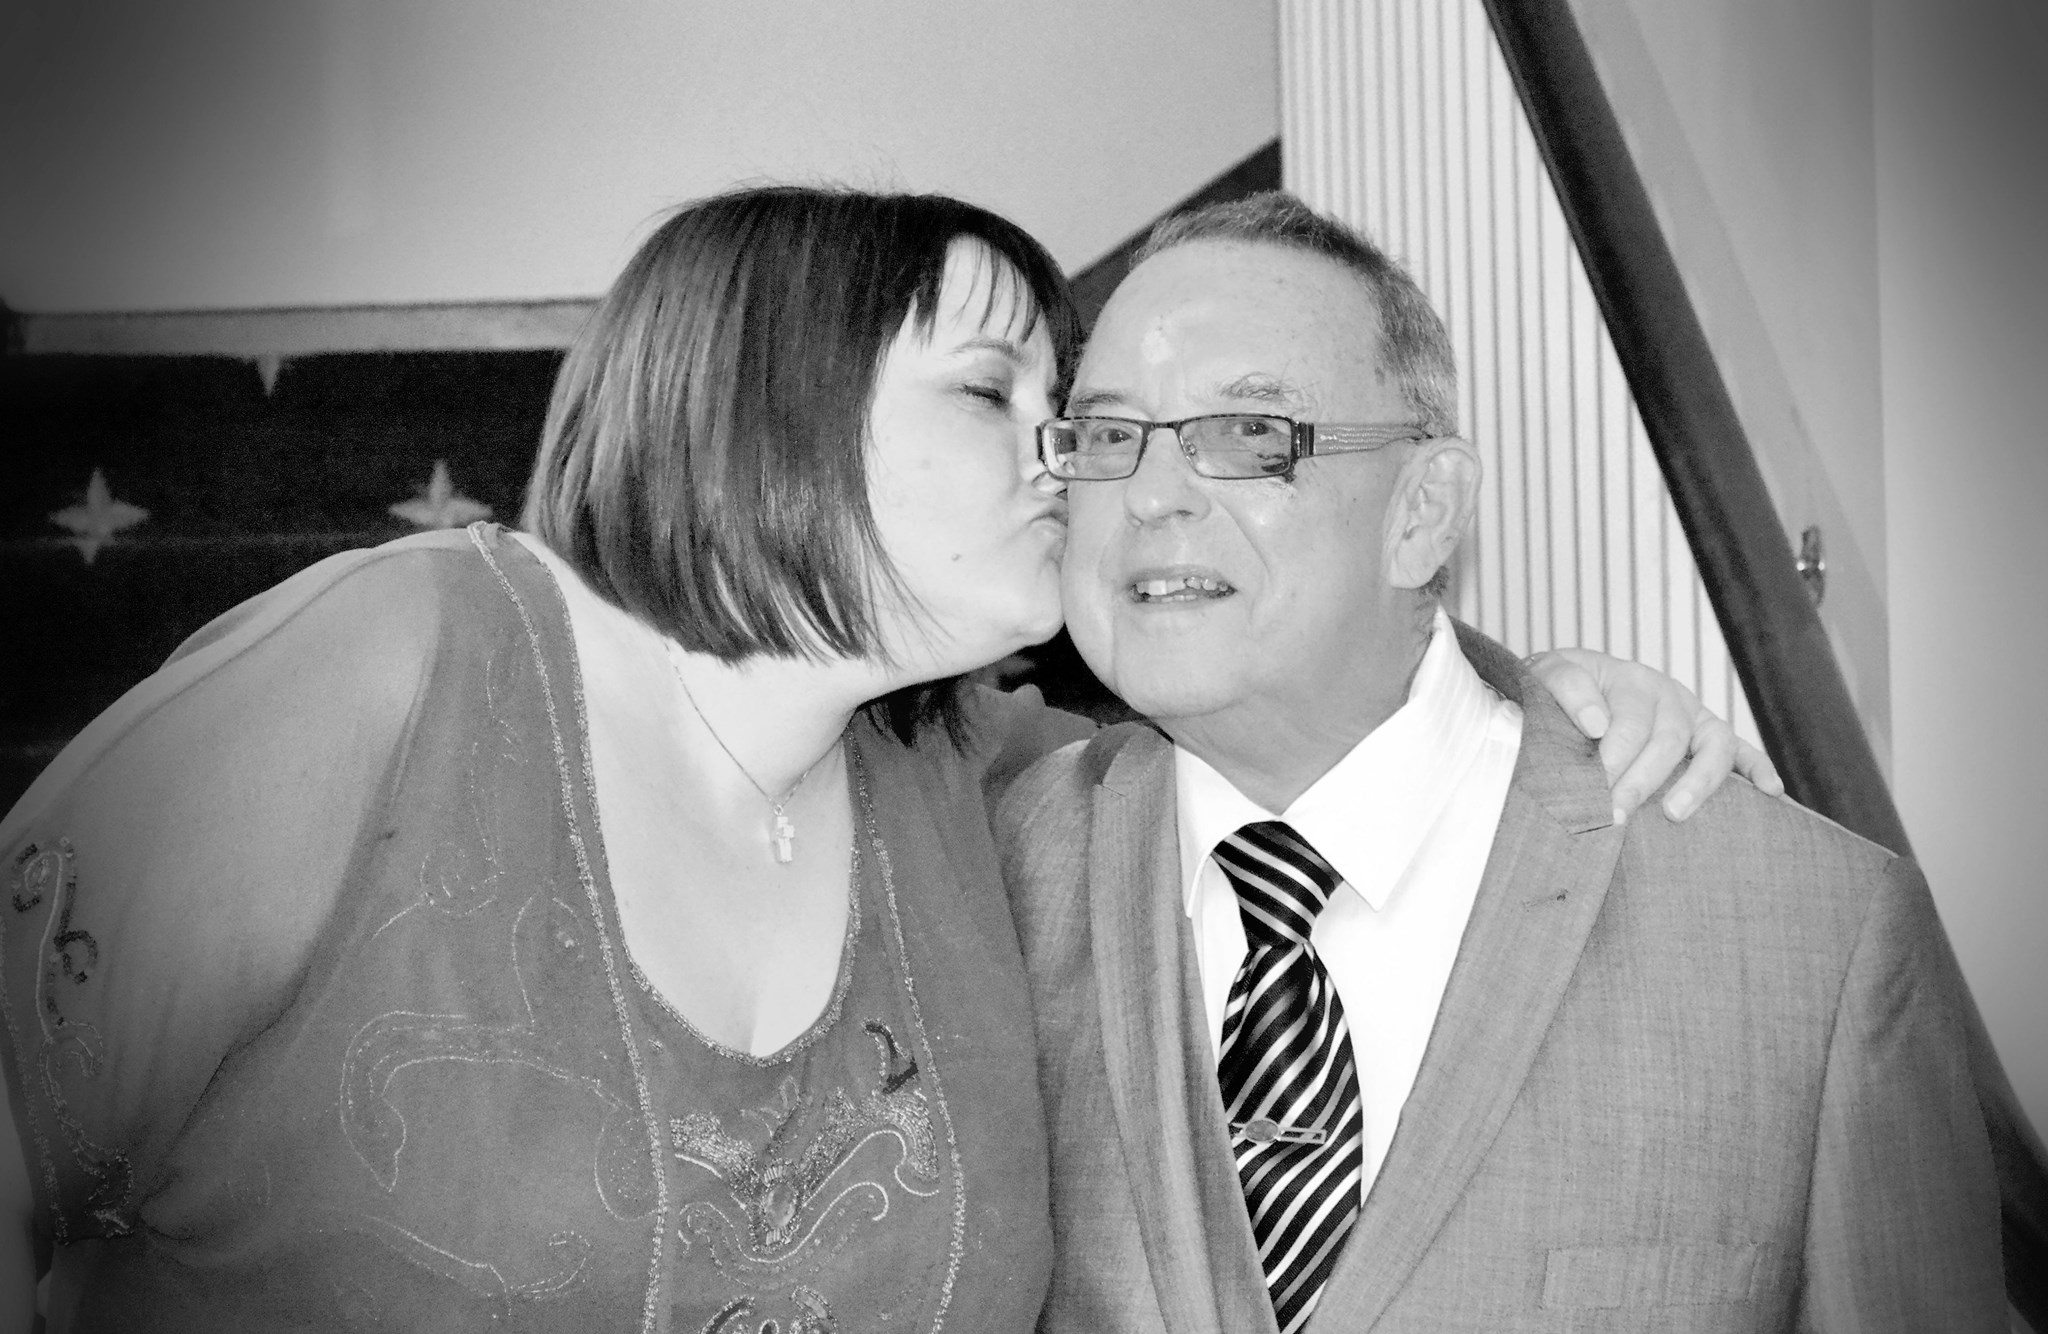 Me and Dad - my wedding 3/1/2015.